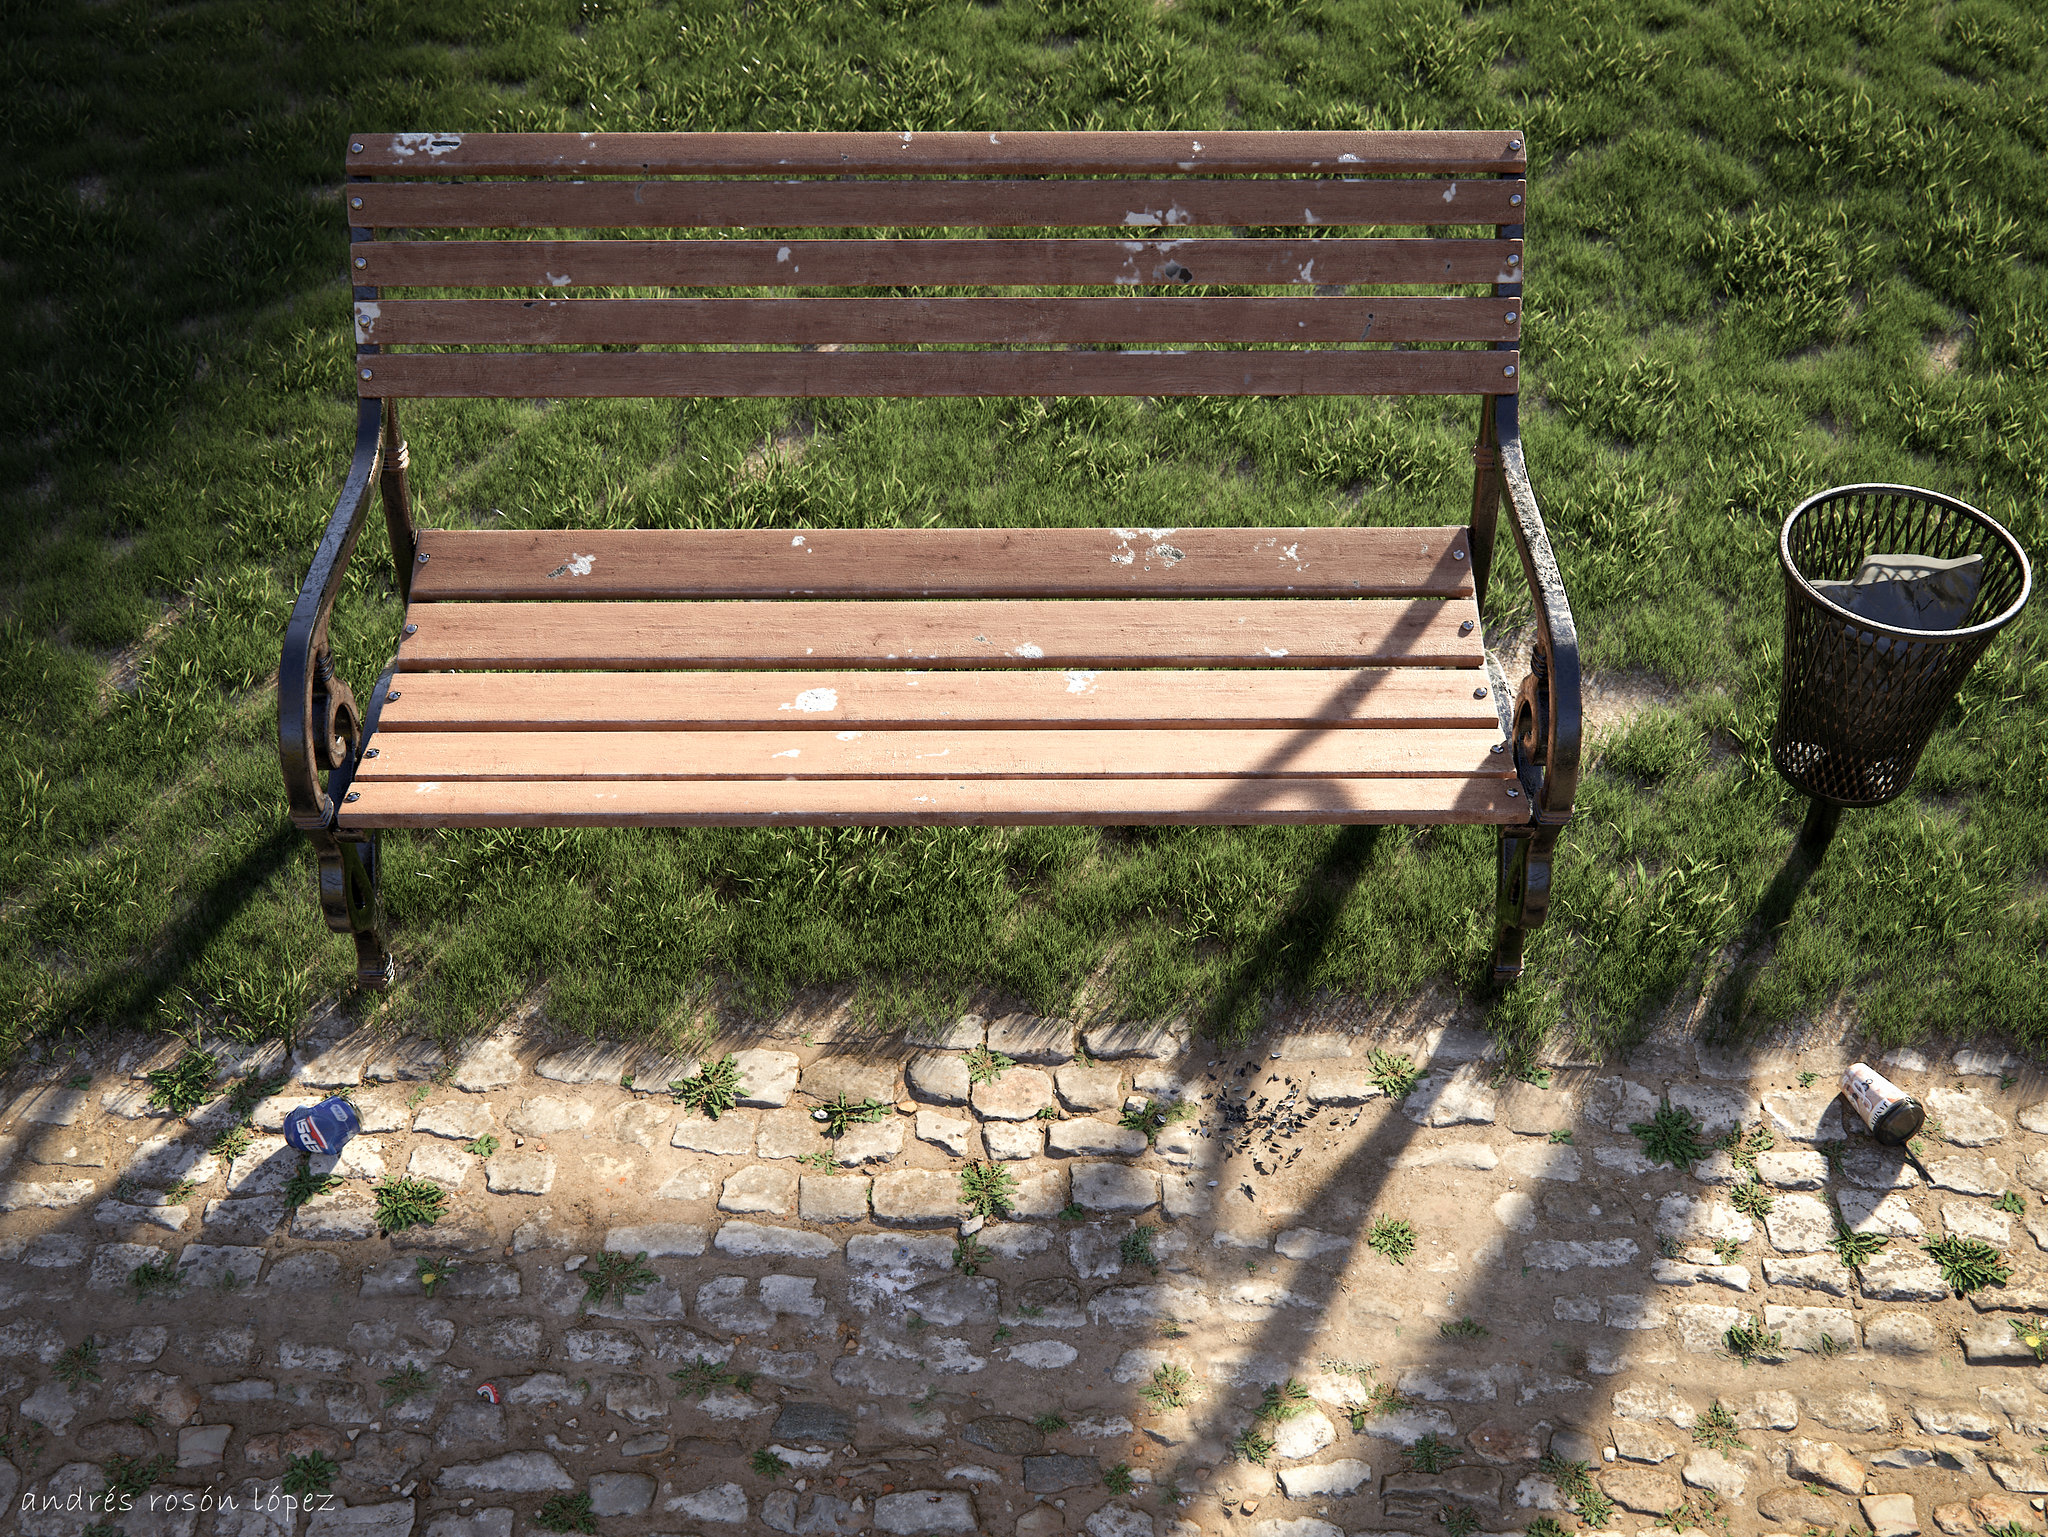 Bench in the Park(Imagine)